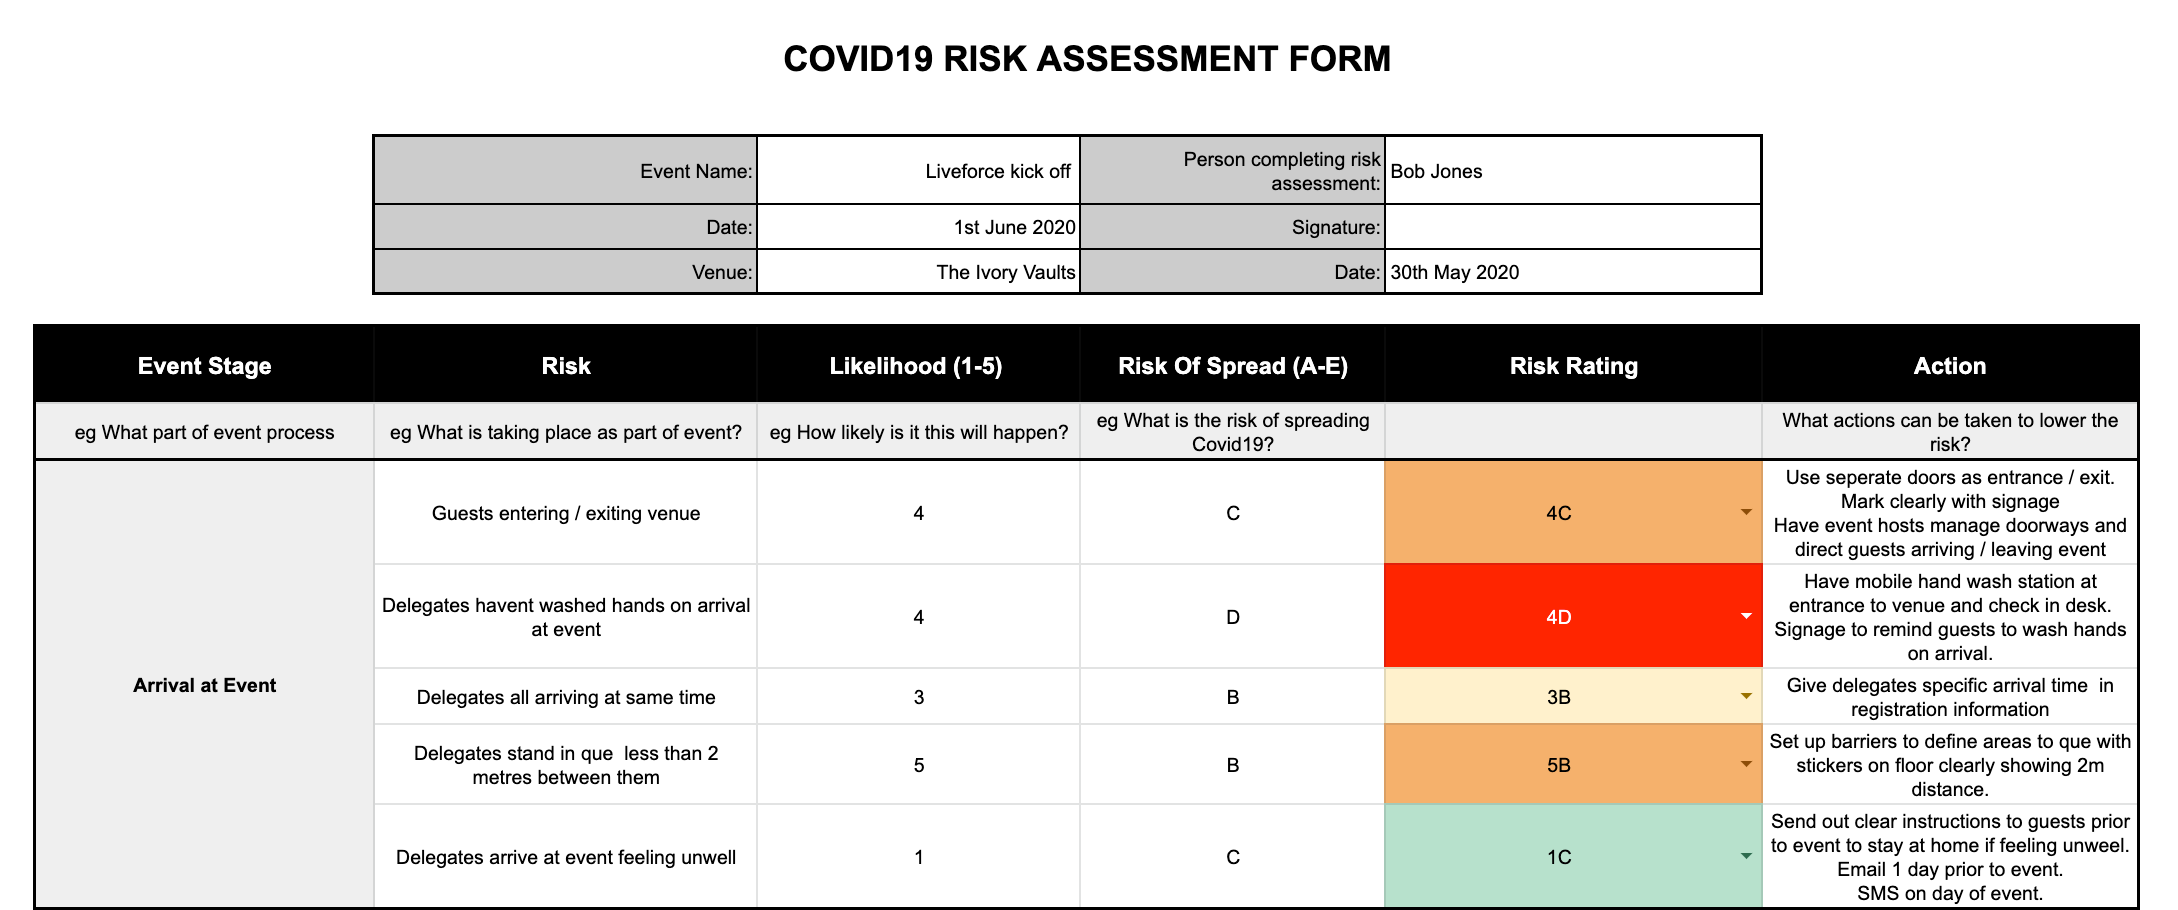 Covid-19 Risk Assessment Form for Events